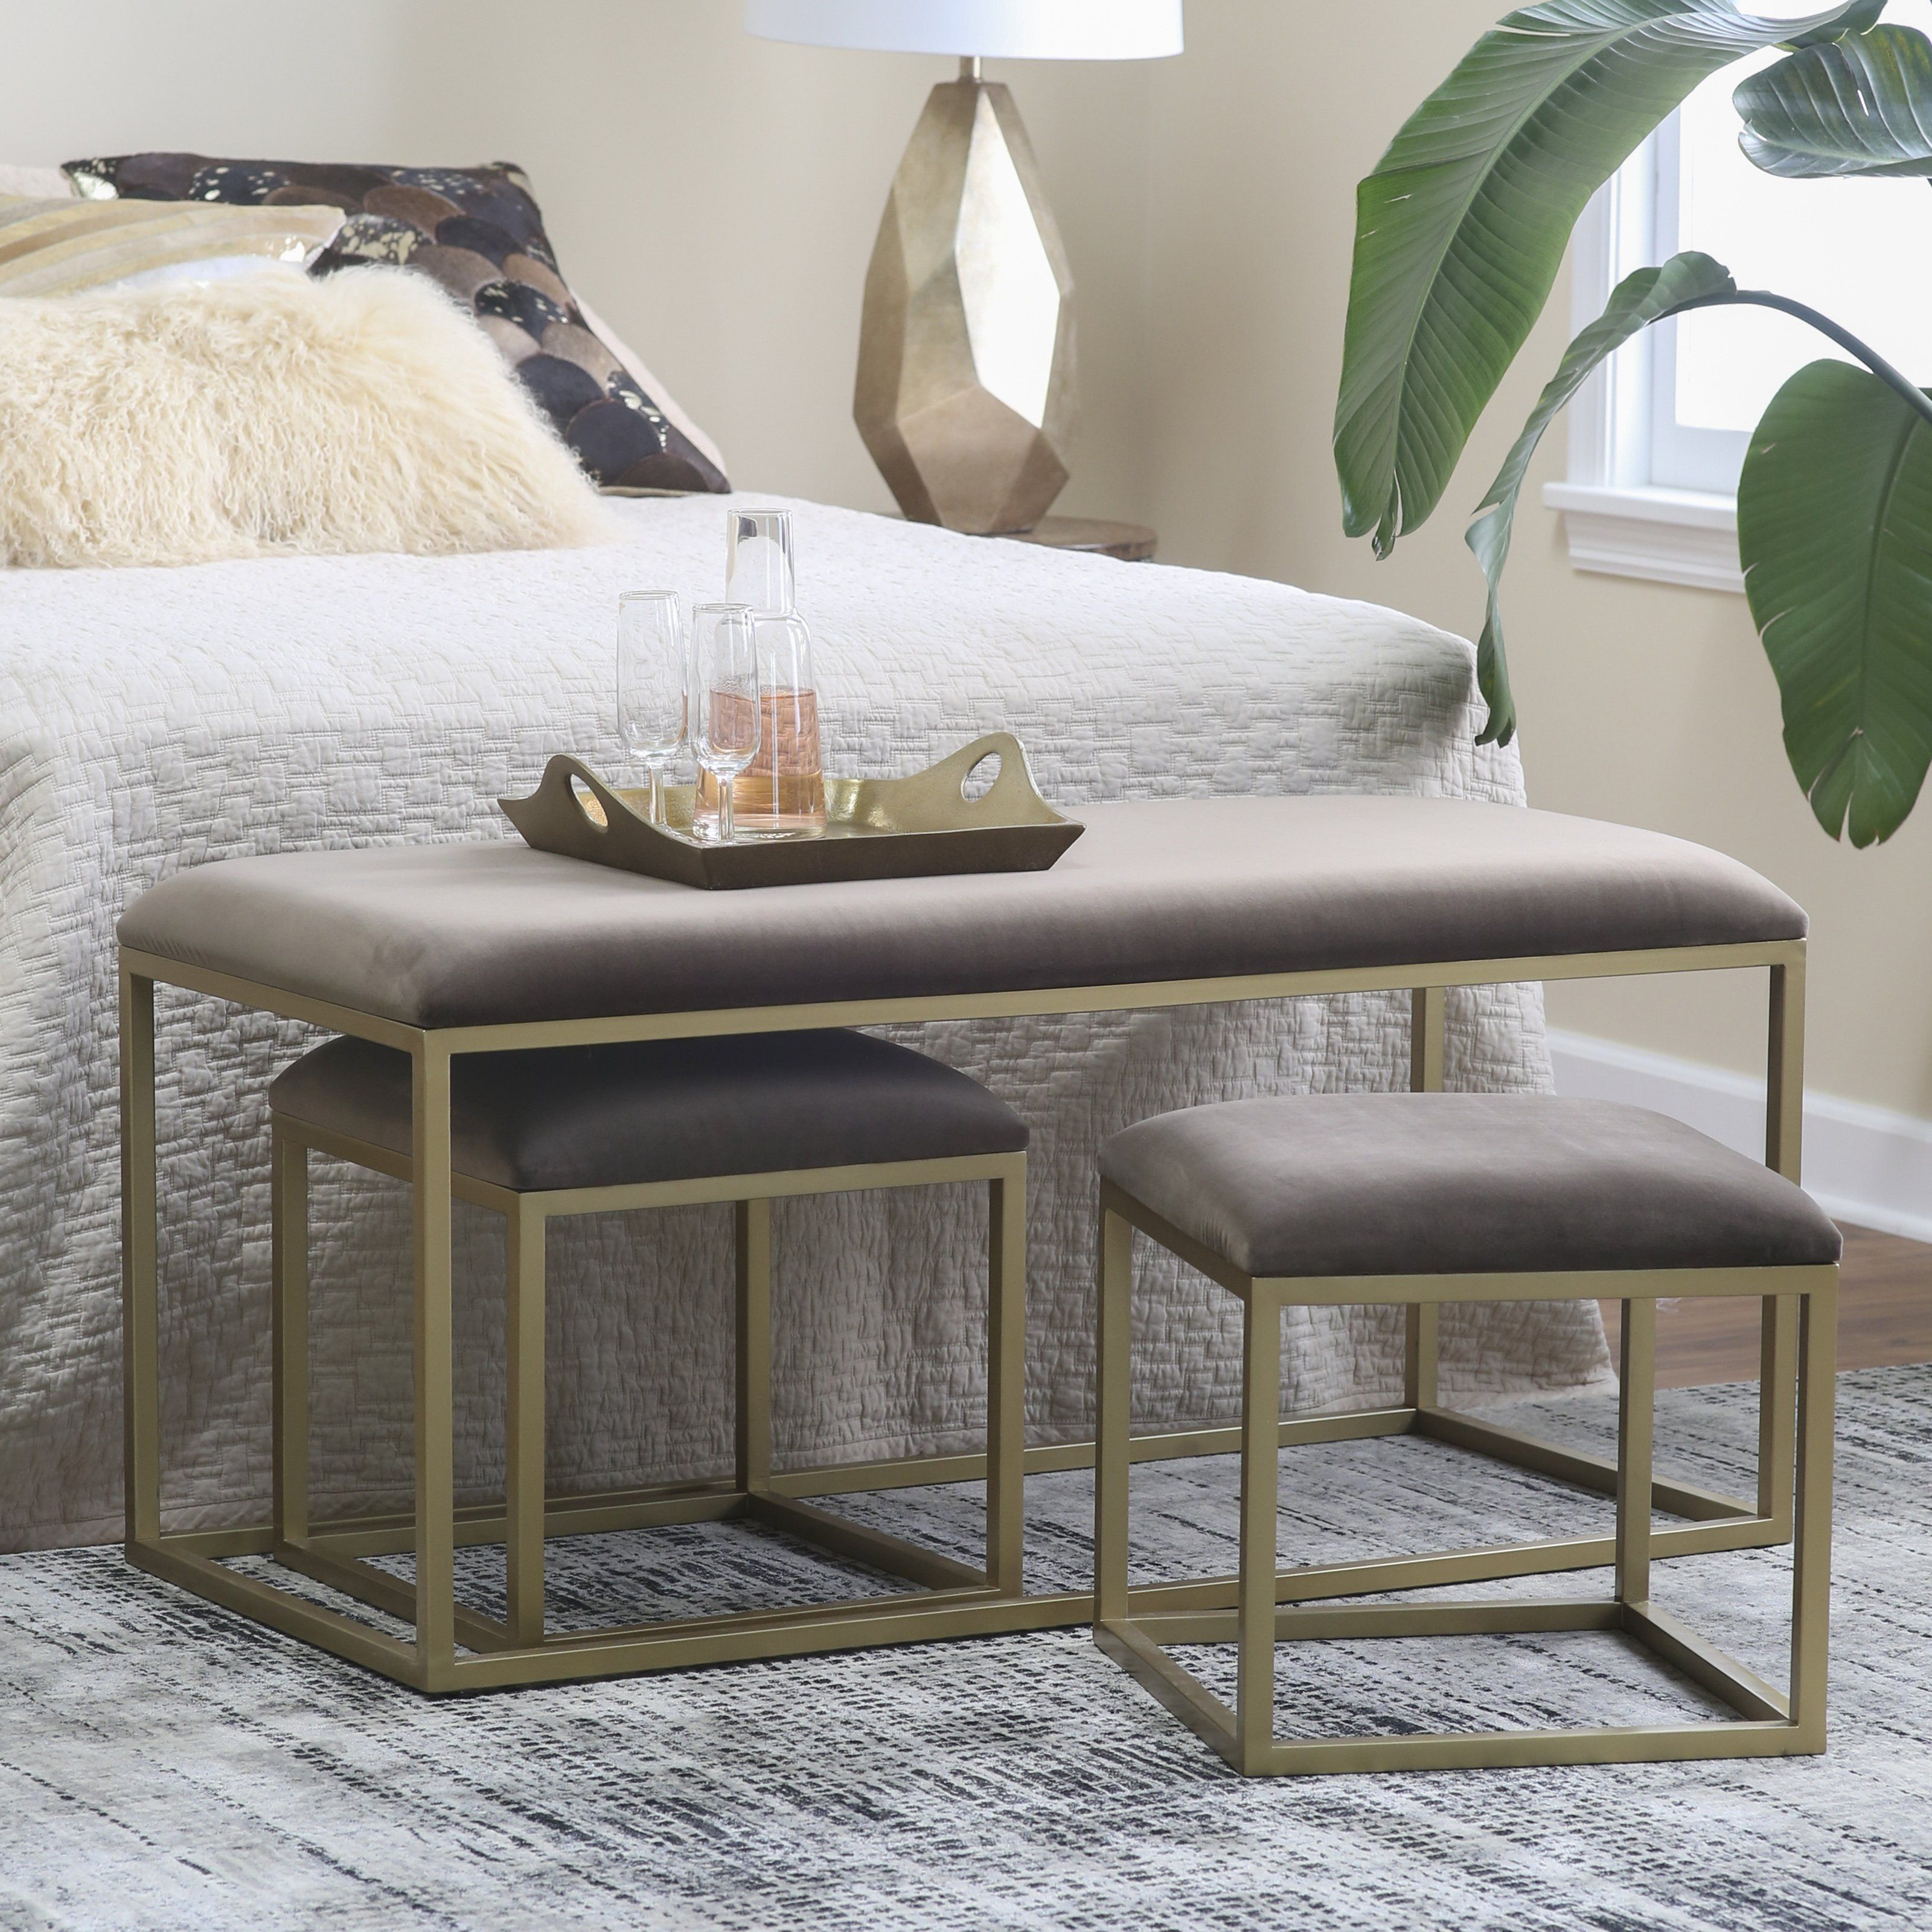 Belham Living Nova Nesting Bench And Ottomans In 2019 Products Upholstered Storage Bench End Of Bed Ottoman Upholstered Bench